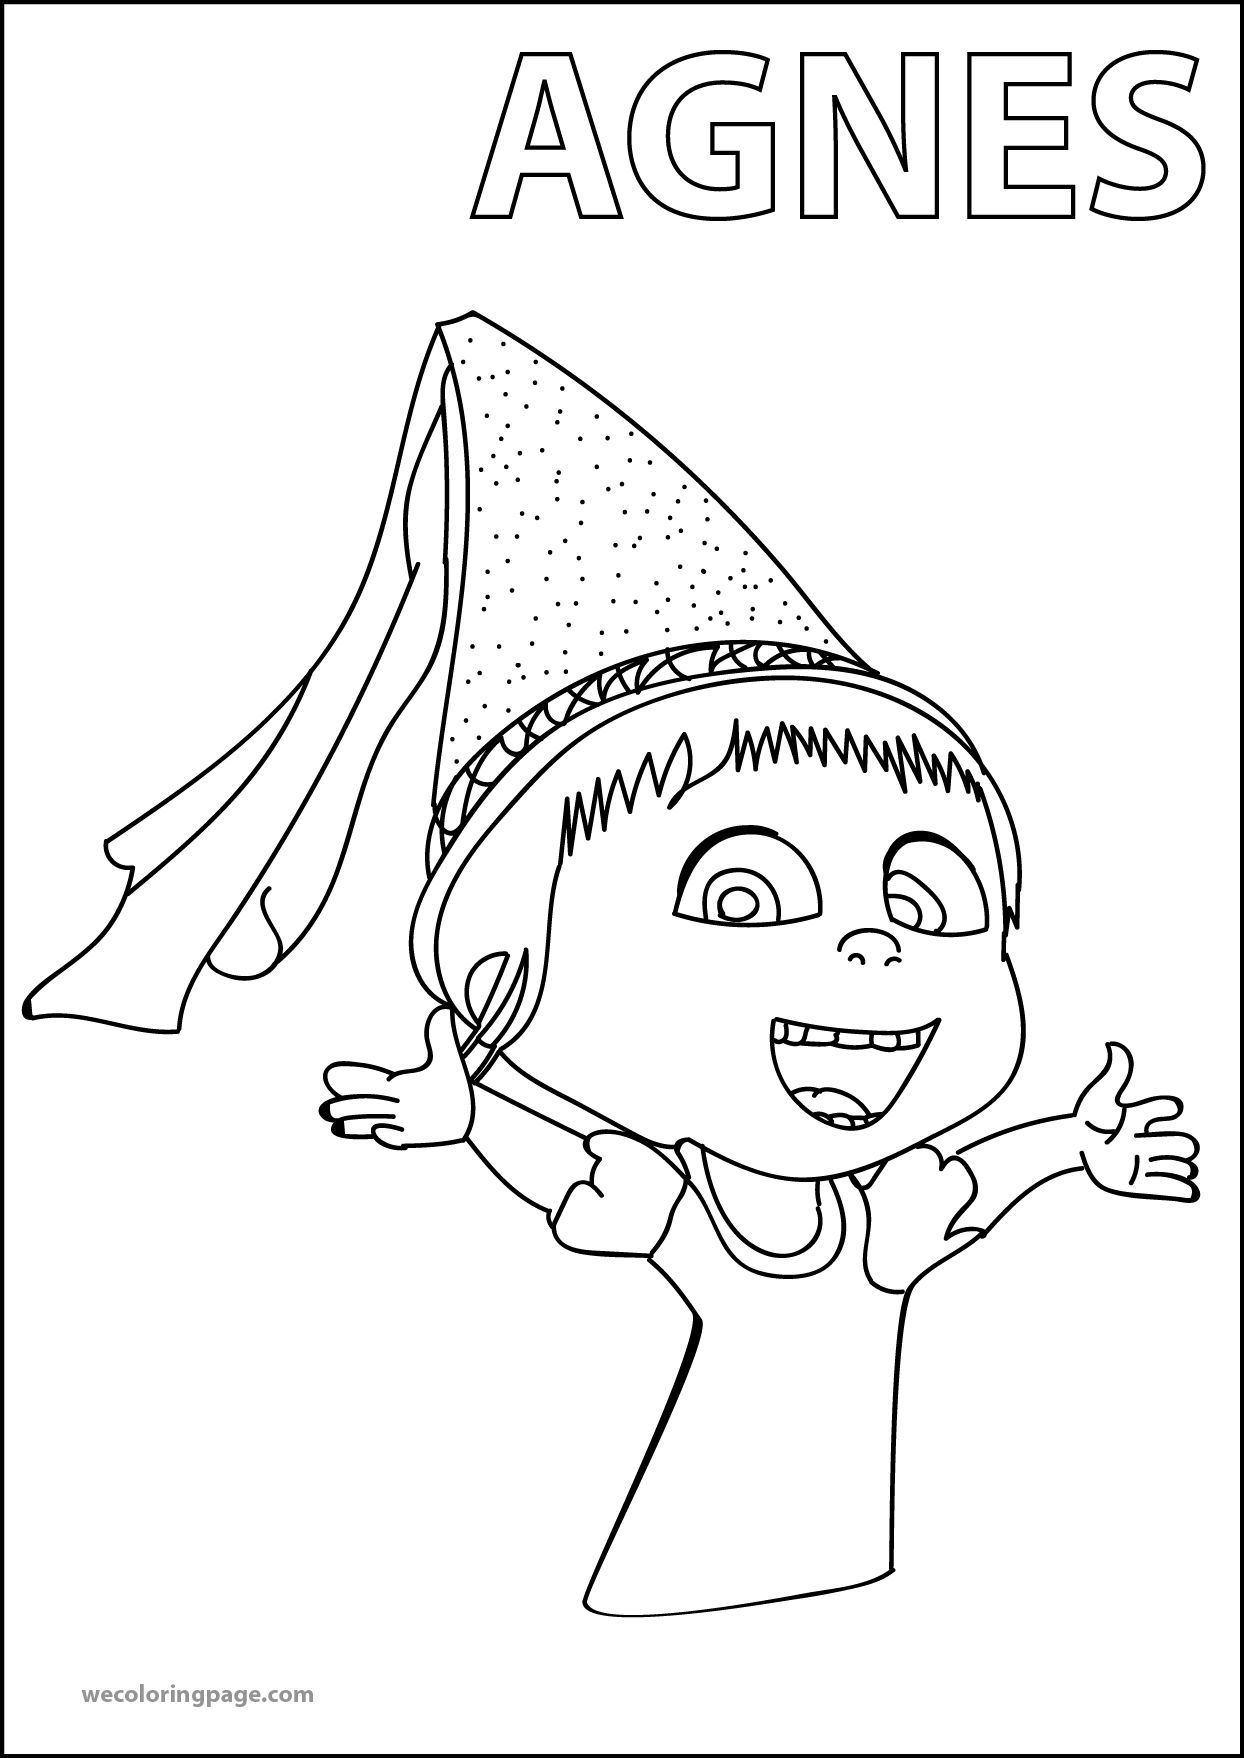 Awesome Minions Coloring Pages Minions Coloring Pages Coloring